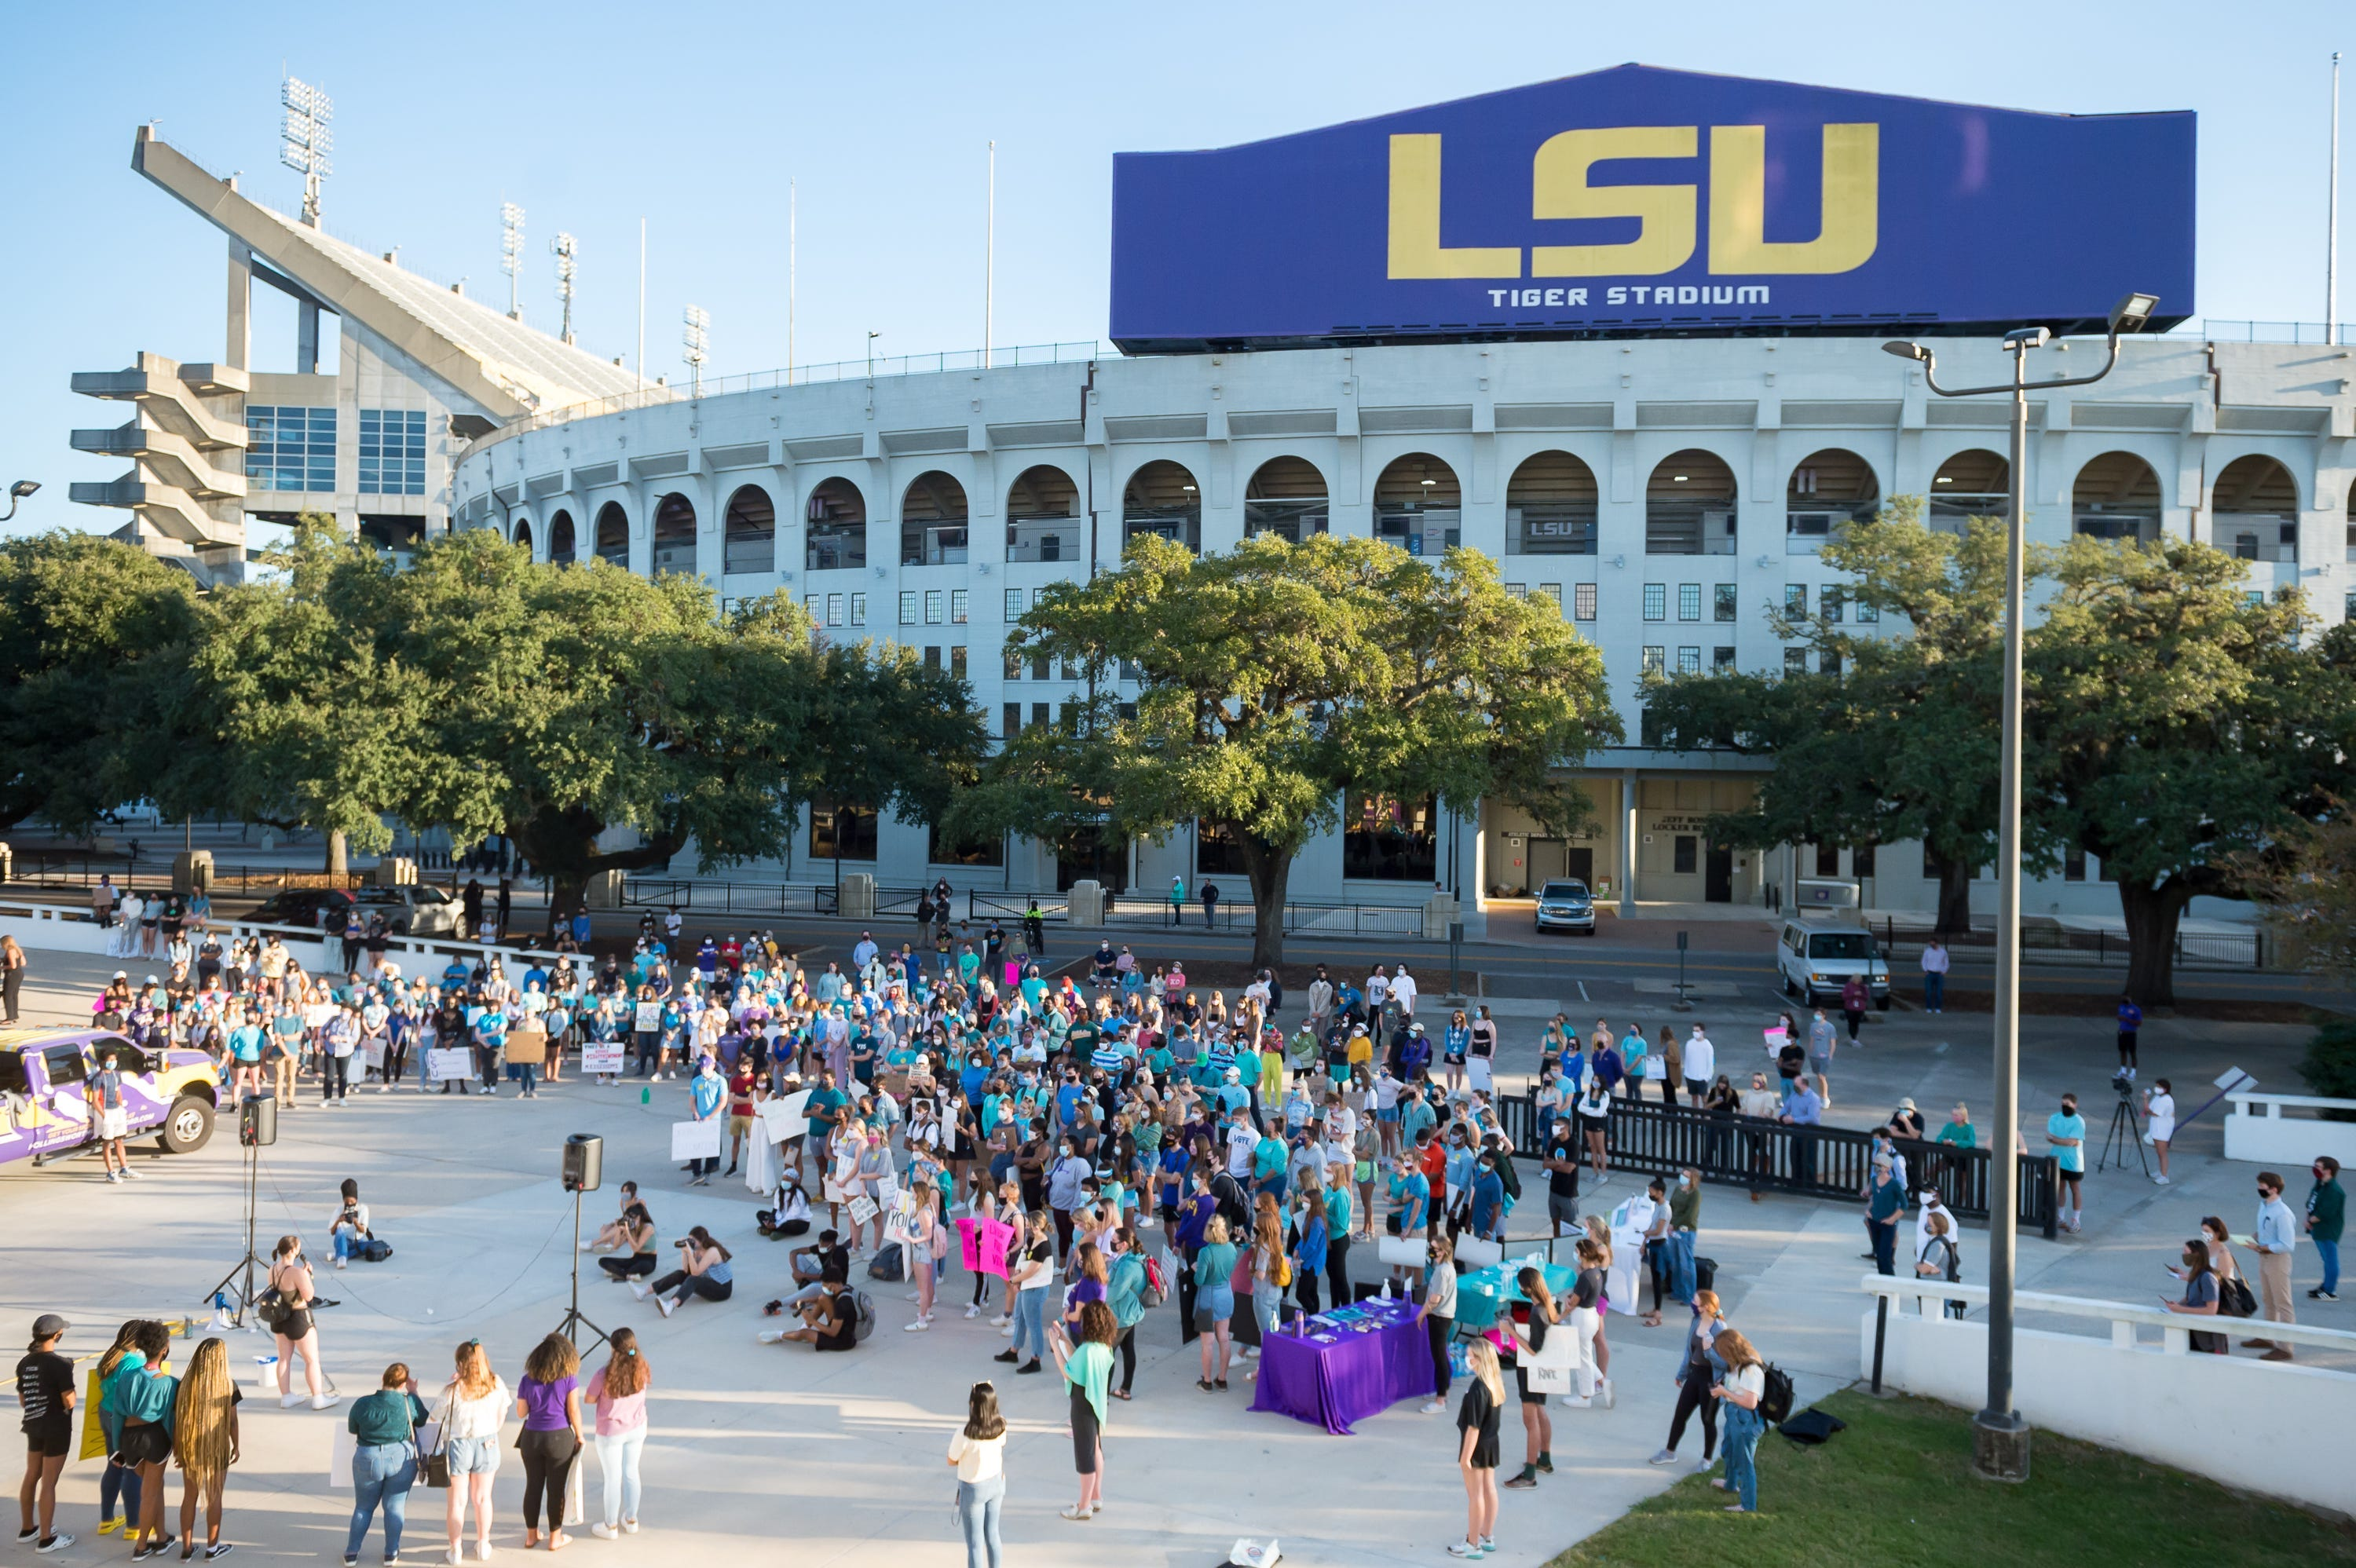 Protesters gather and march on LSU campus in reaction to the way school officials mishandled sexual misconduct allegations against students, including top athletes. November 20, 2020.